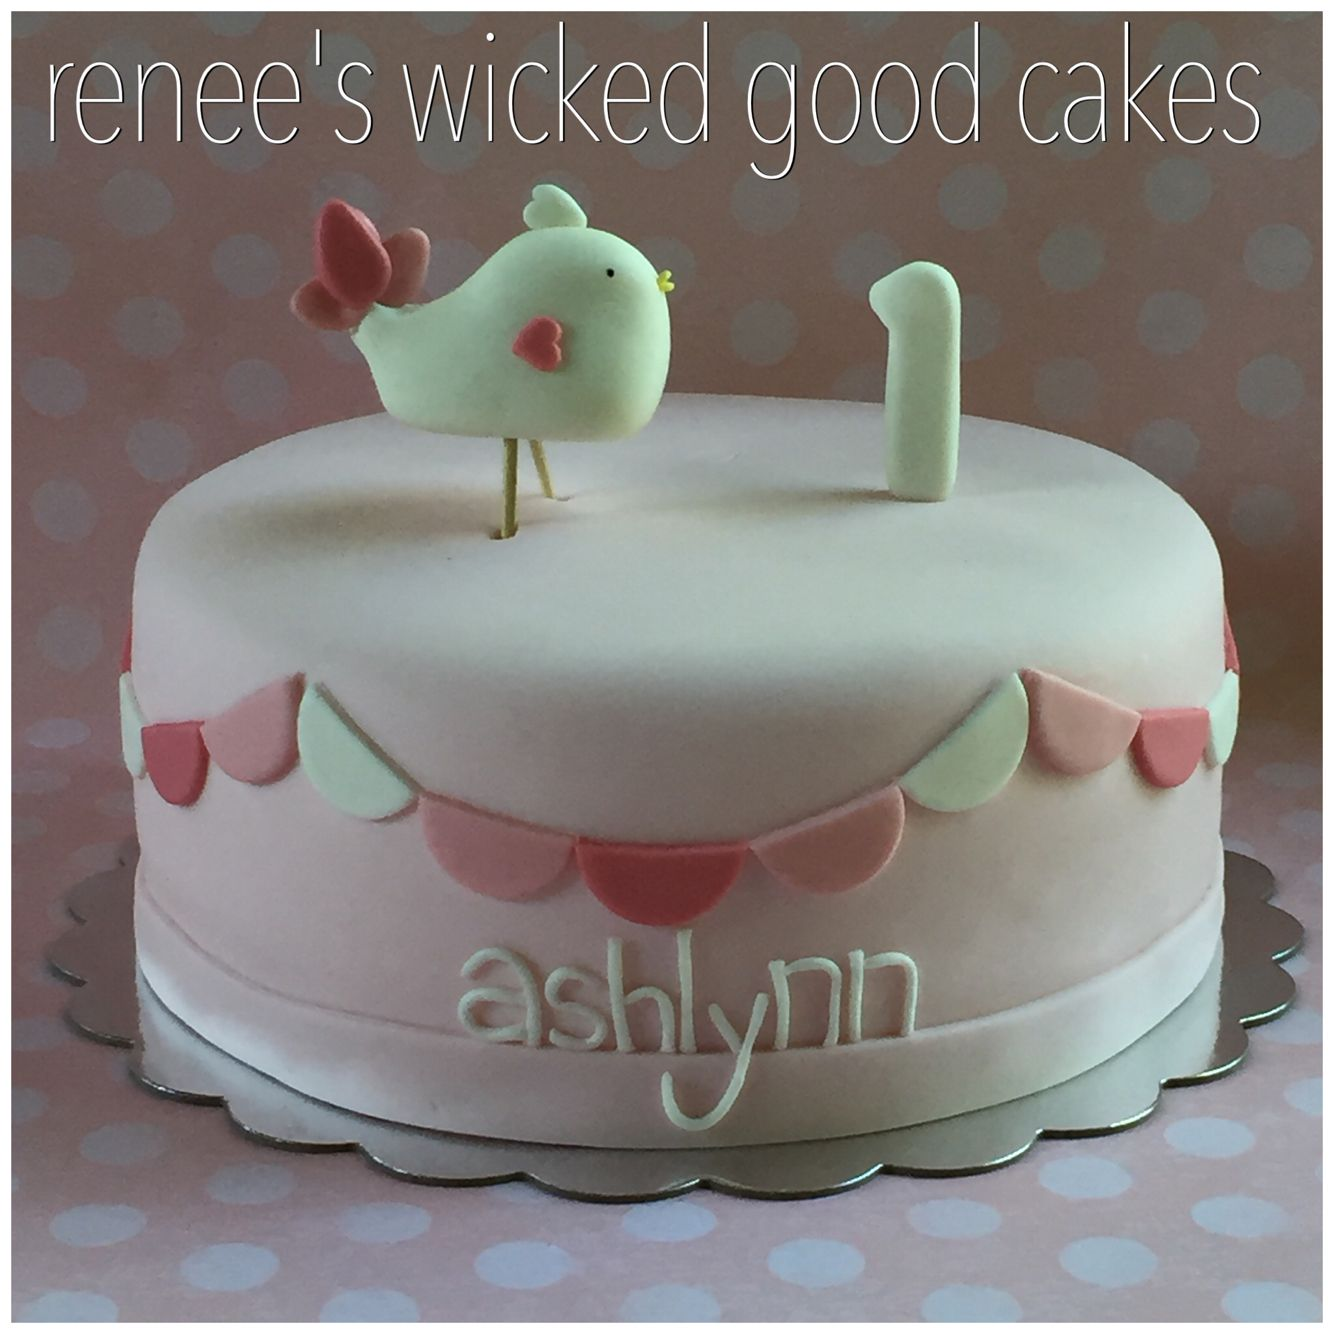 Little birdie first birthday cake Renees WICKED GOOD Cakes like